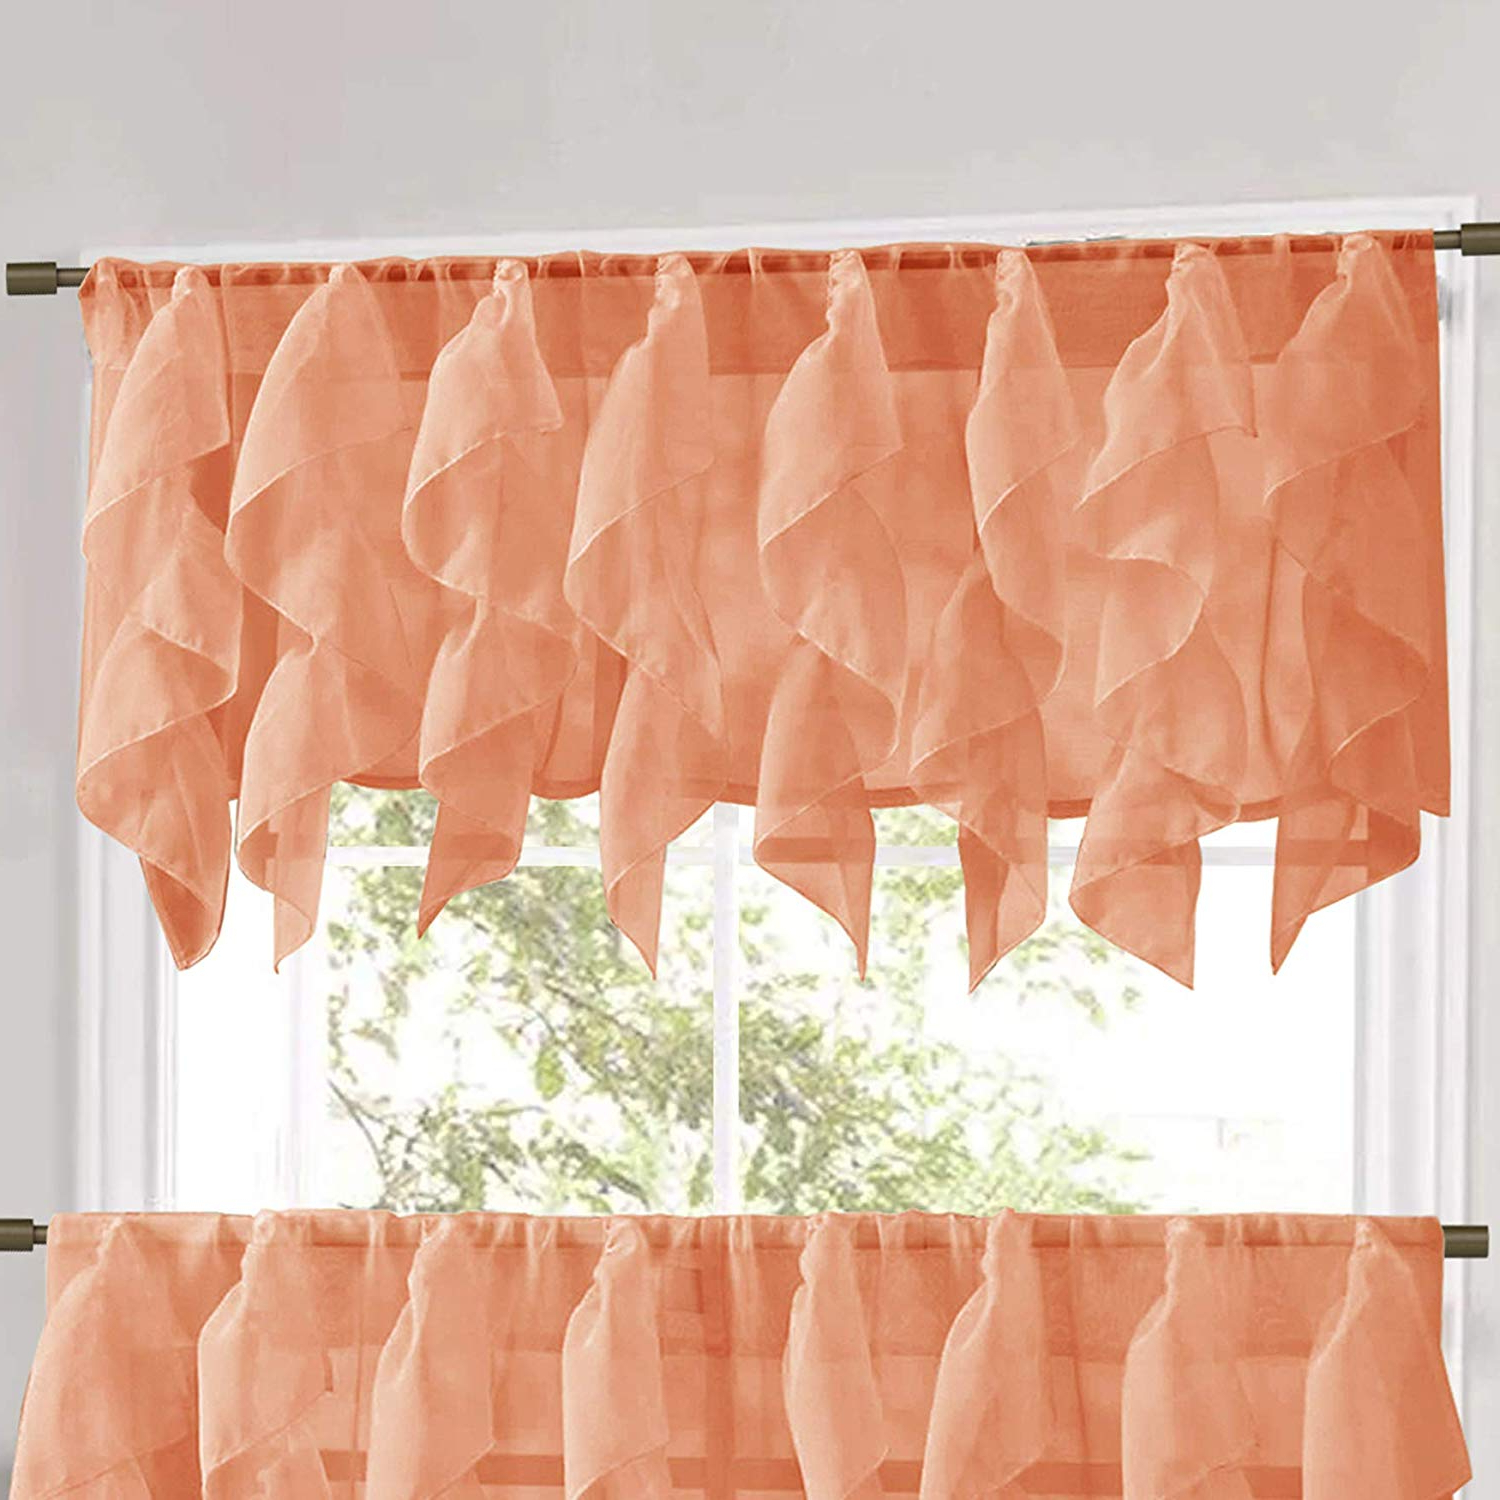 Amazon: Sweet Home Collection Veritcal Kitchen Curtain Regarding Most Popular Maize Vertical Ruffled Waterfall Valance And Curtain Tiers (View 10 of 20)